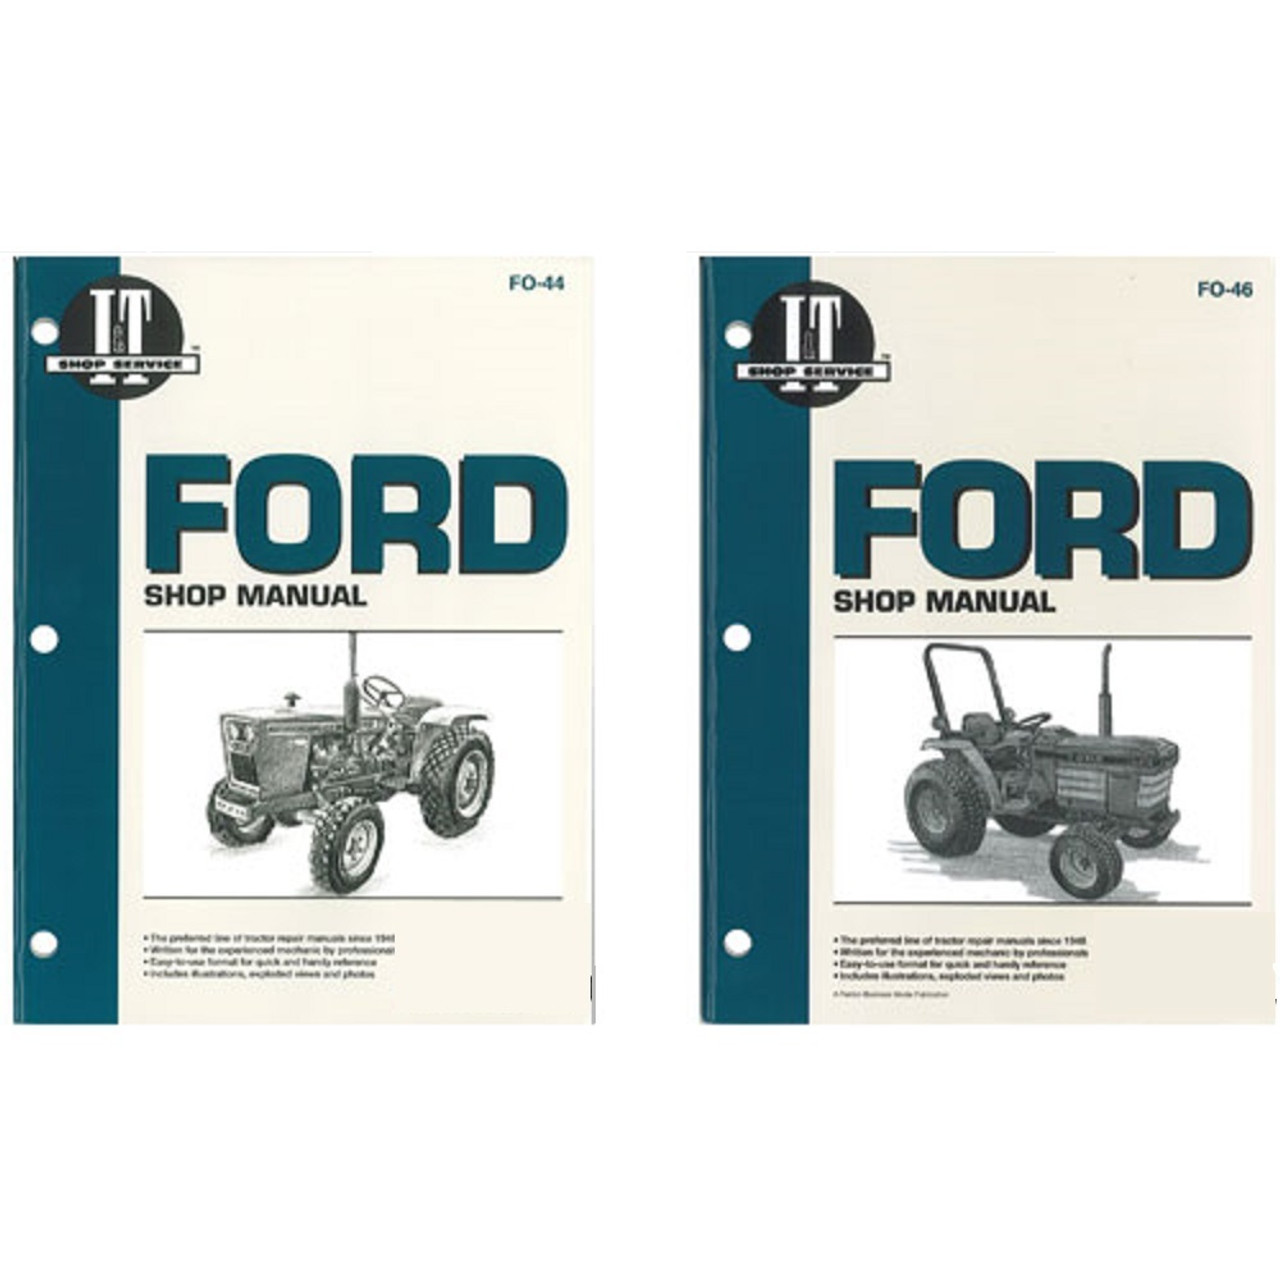 Ford Compact Tractor Parts | BrokenTractor.com on